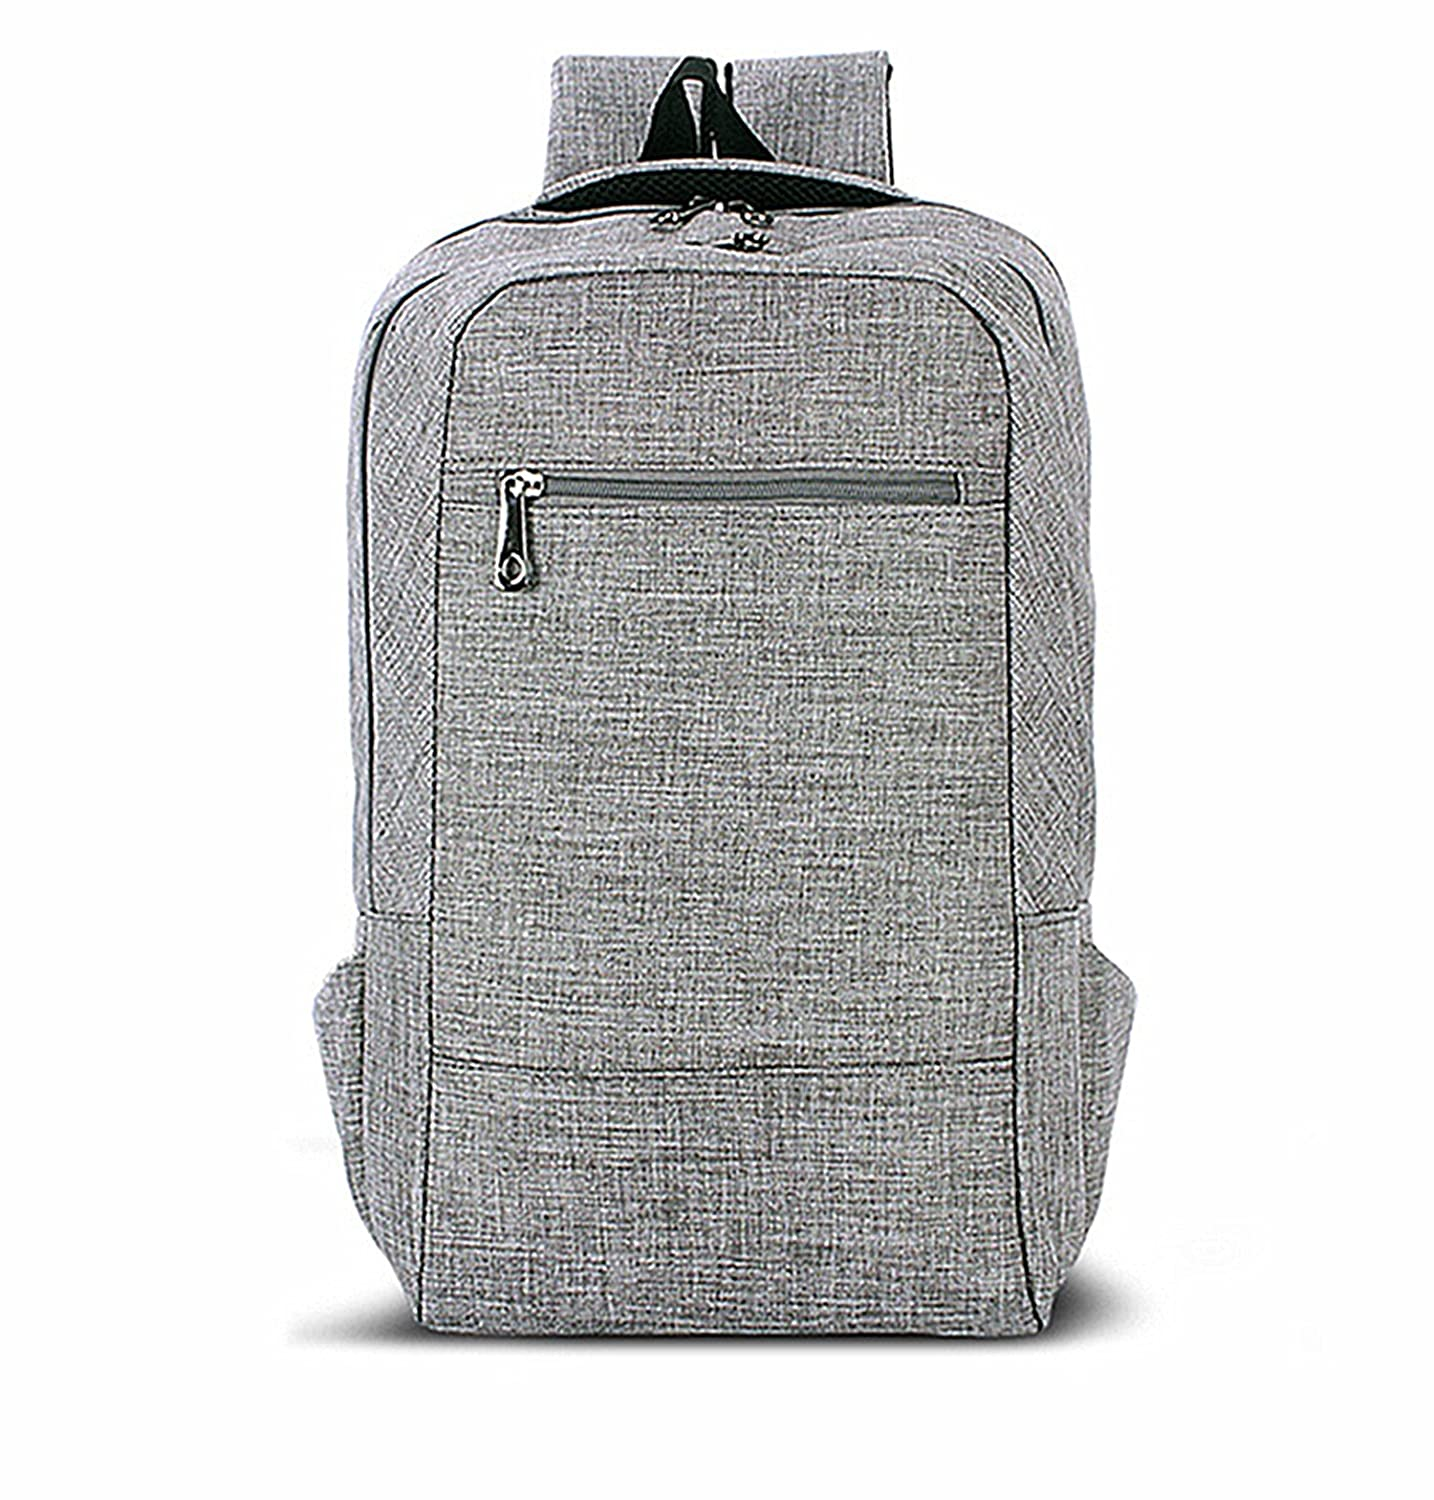 Laptop Backpack,Tincon-Z 15 15.6 Inch College Backpacks Lightweight Travel Daypack - Grey (Grey) on sale